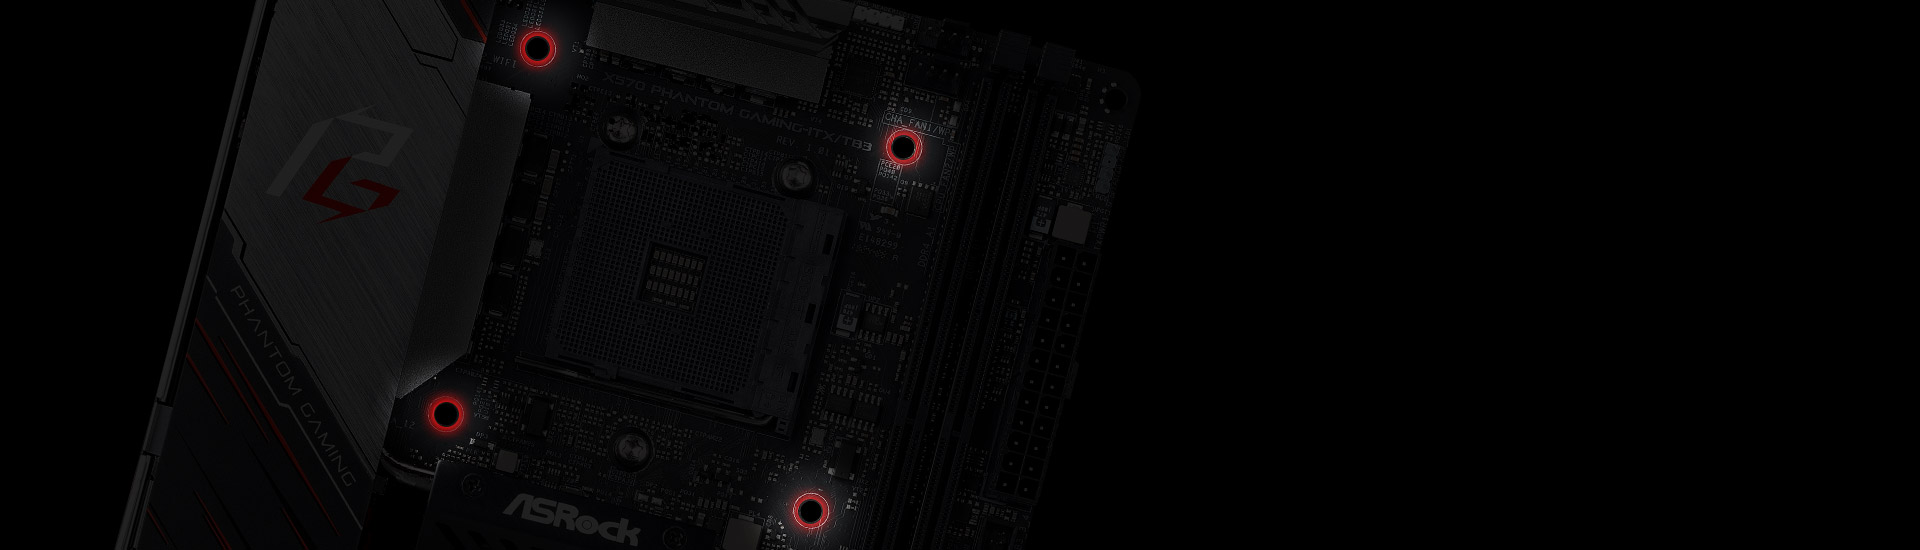 Red Highlights For the Three Mounting Holes on the ASRock X570 Phantom Gaming-ITX/TB3 Motherboard